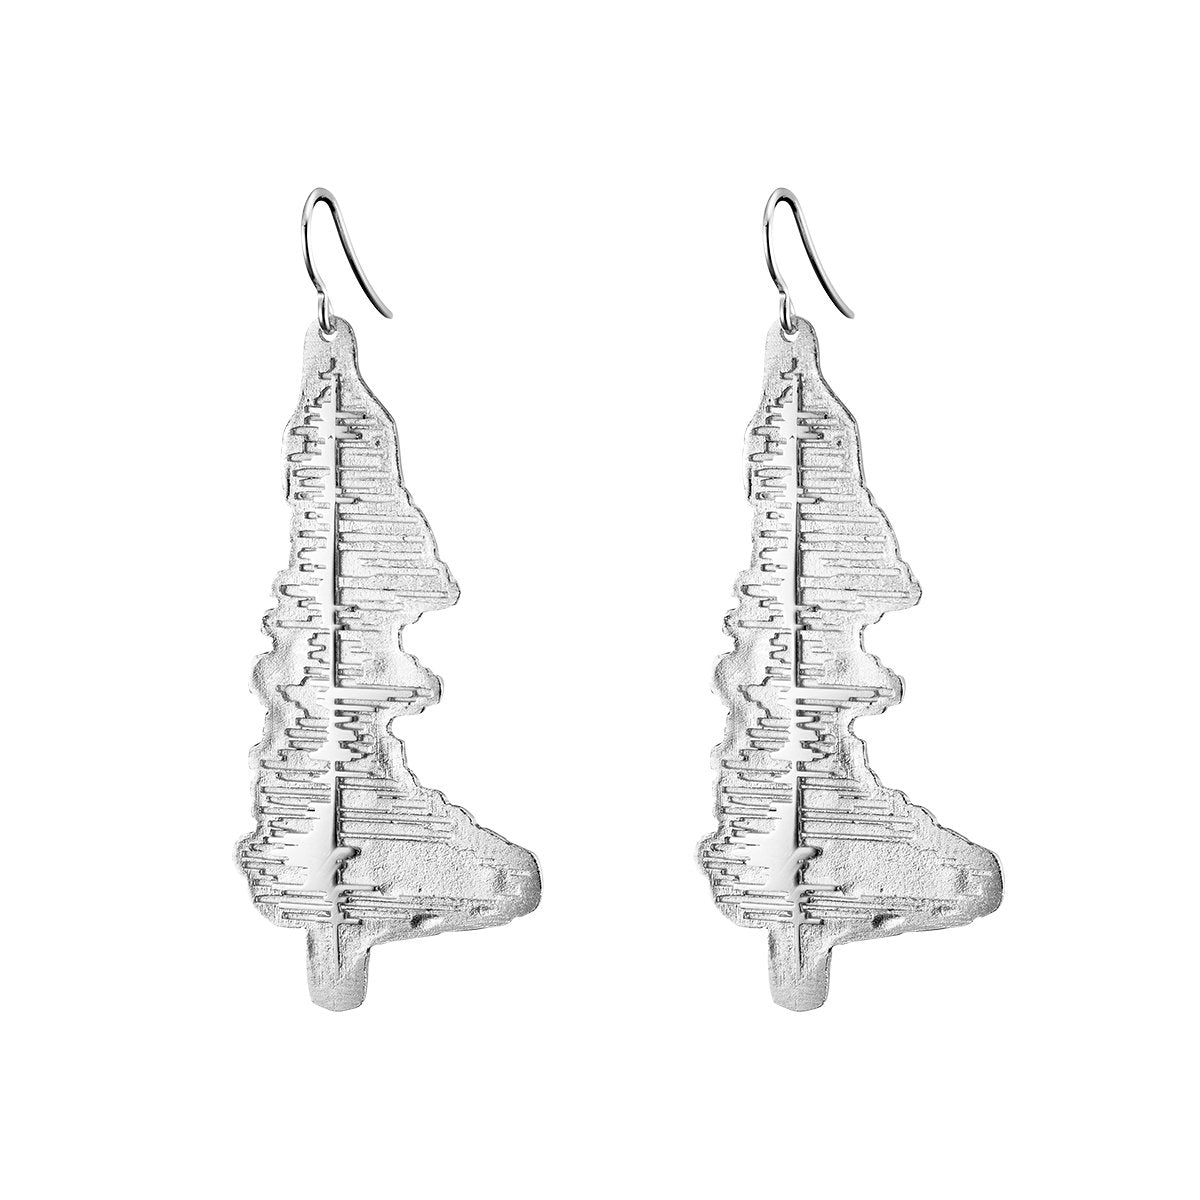 Tahdon earrings